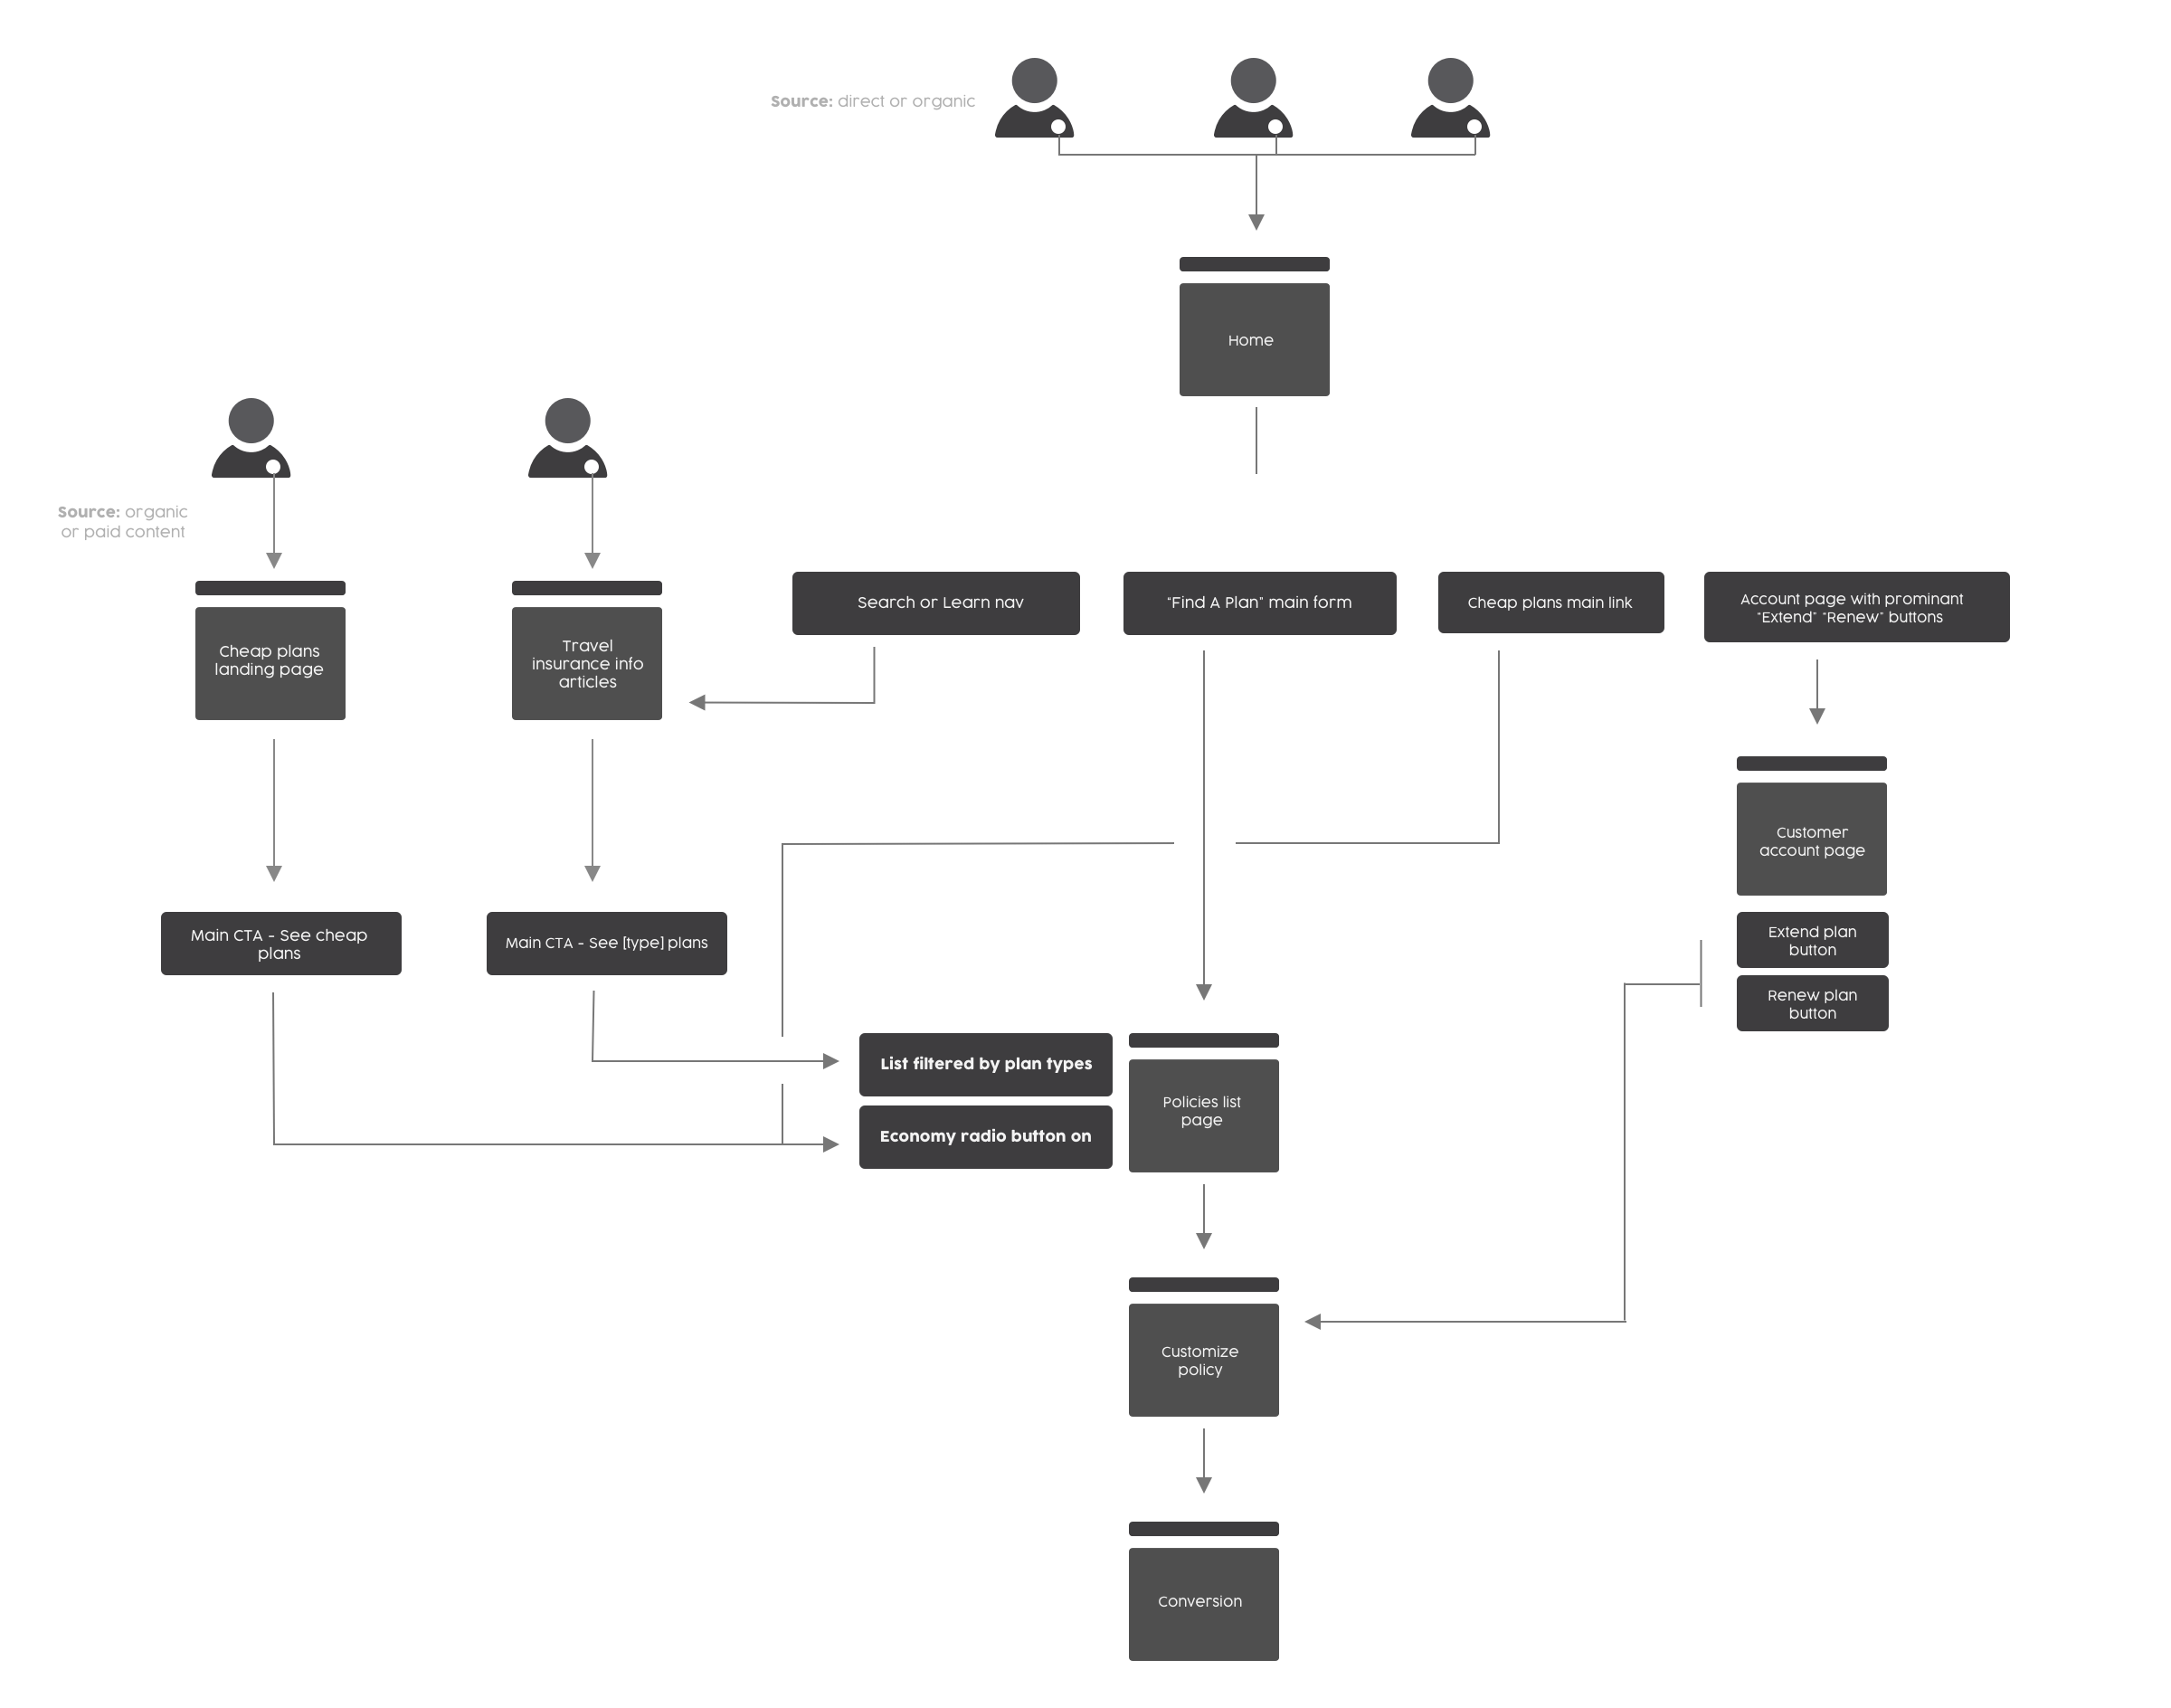 Customer userflows